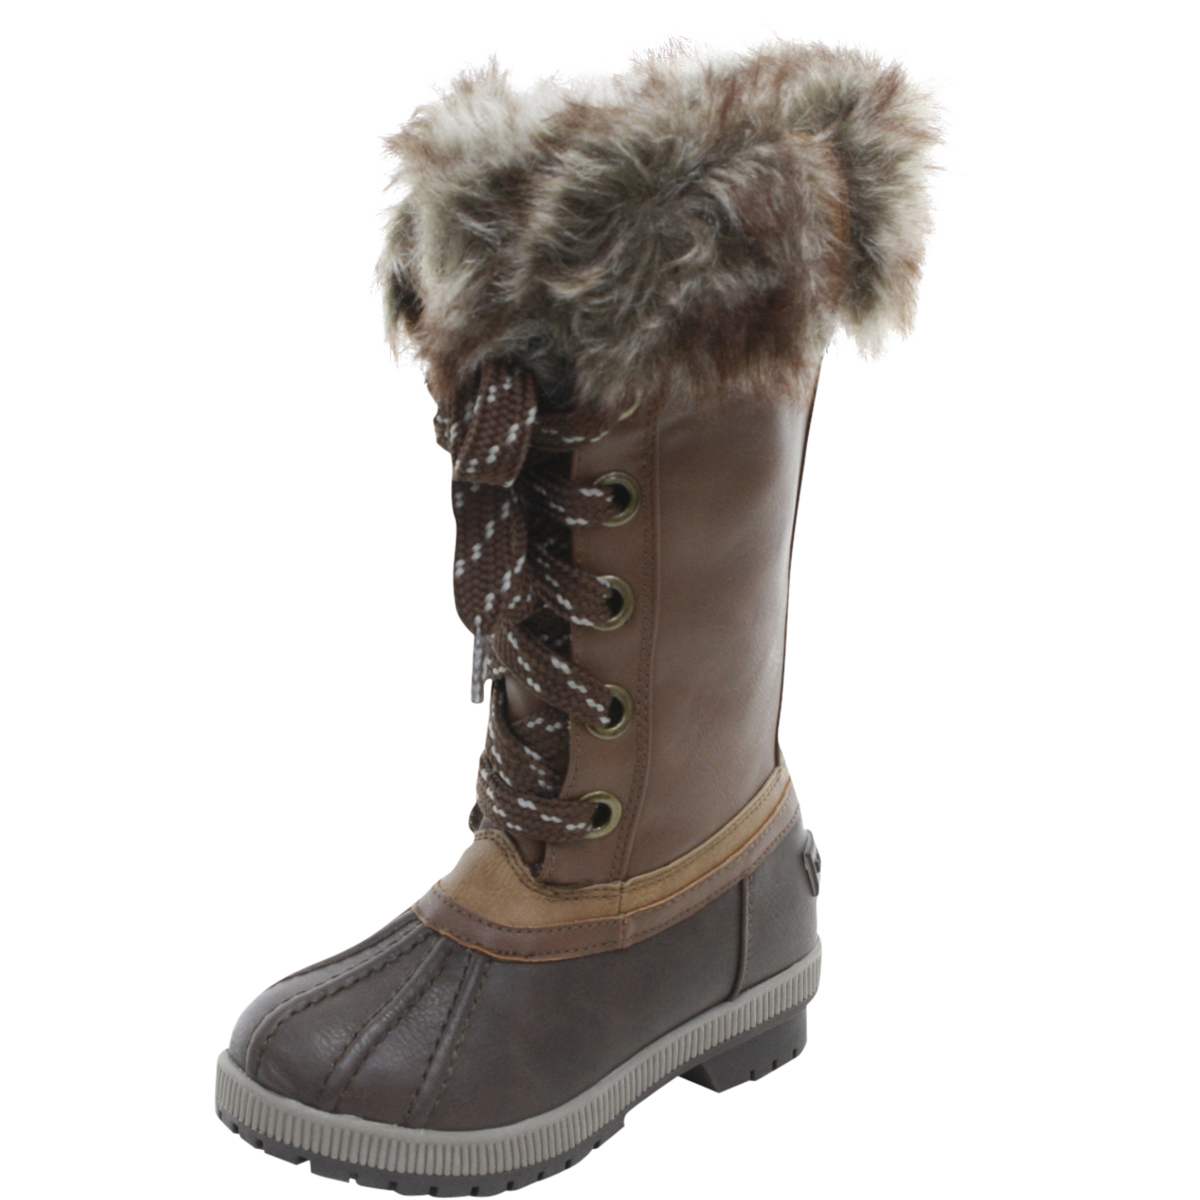 Image of London Fog Little/Big Girl's Melton Water Resistant Snow Boots Shoes - Brown - 12 M US Little Kid